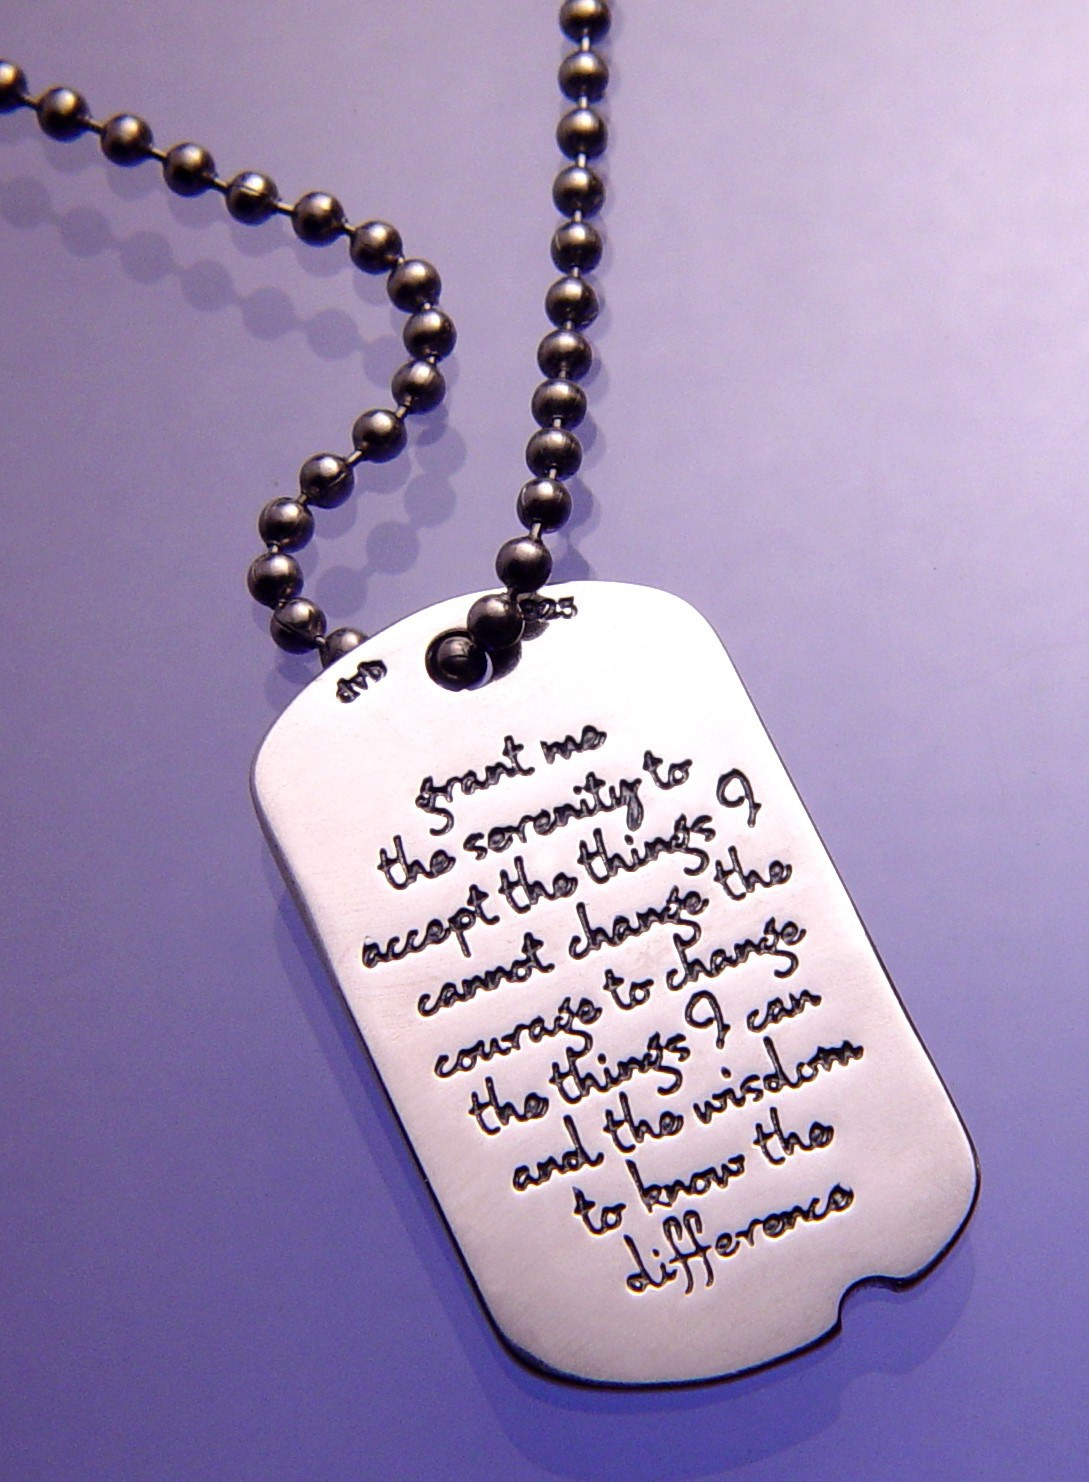 Serenity prayer dog tag serenity prayer pendant my 12 step store the shape of this serenity prayer dog tag is a scaled down reproduction of the shape introduced by us army in 1940 aloadofball Images